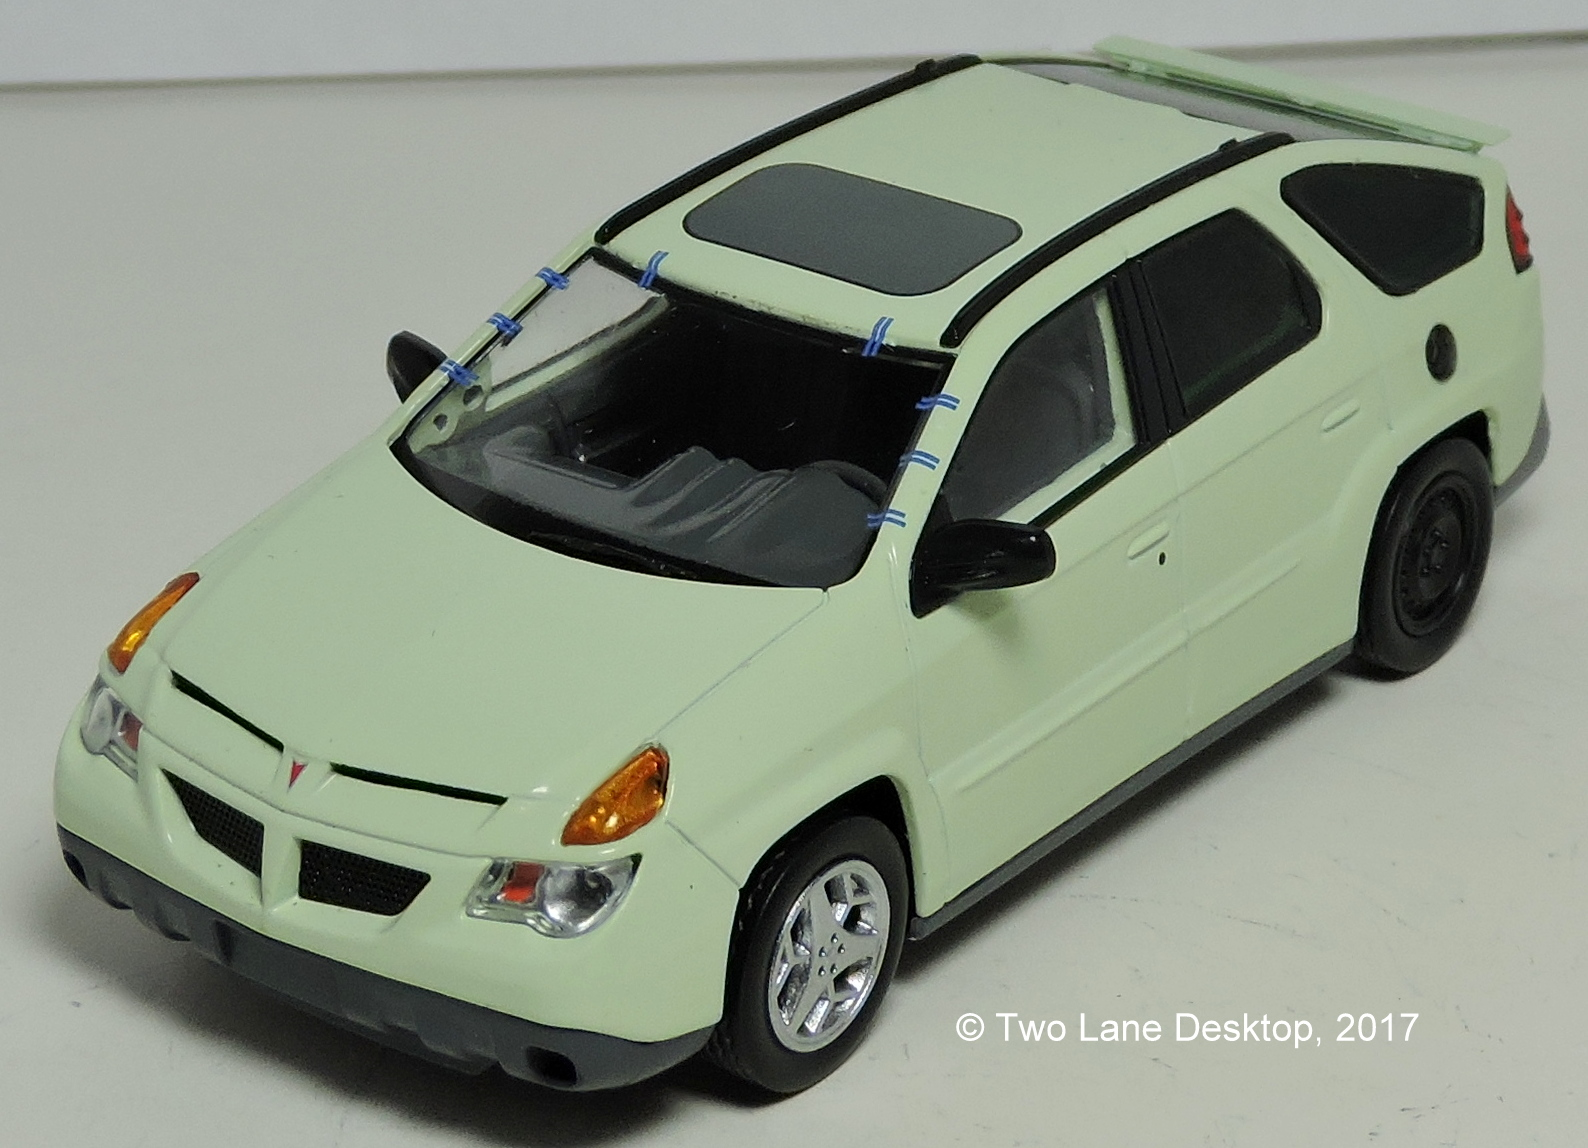 sales as the aztek was discontinued in 2005 since then fanclubs and even the tv show breaking bad has peaked interest into the once ill advised suv